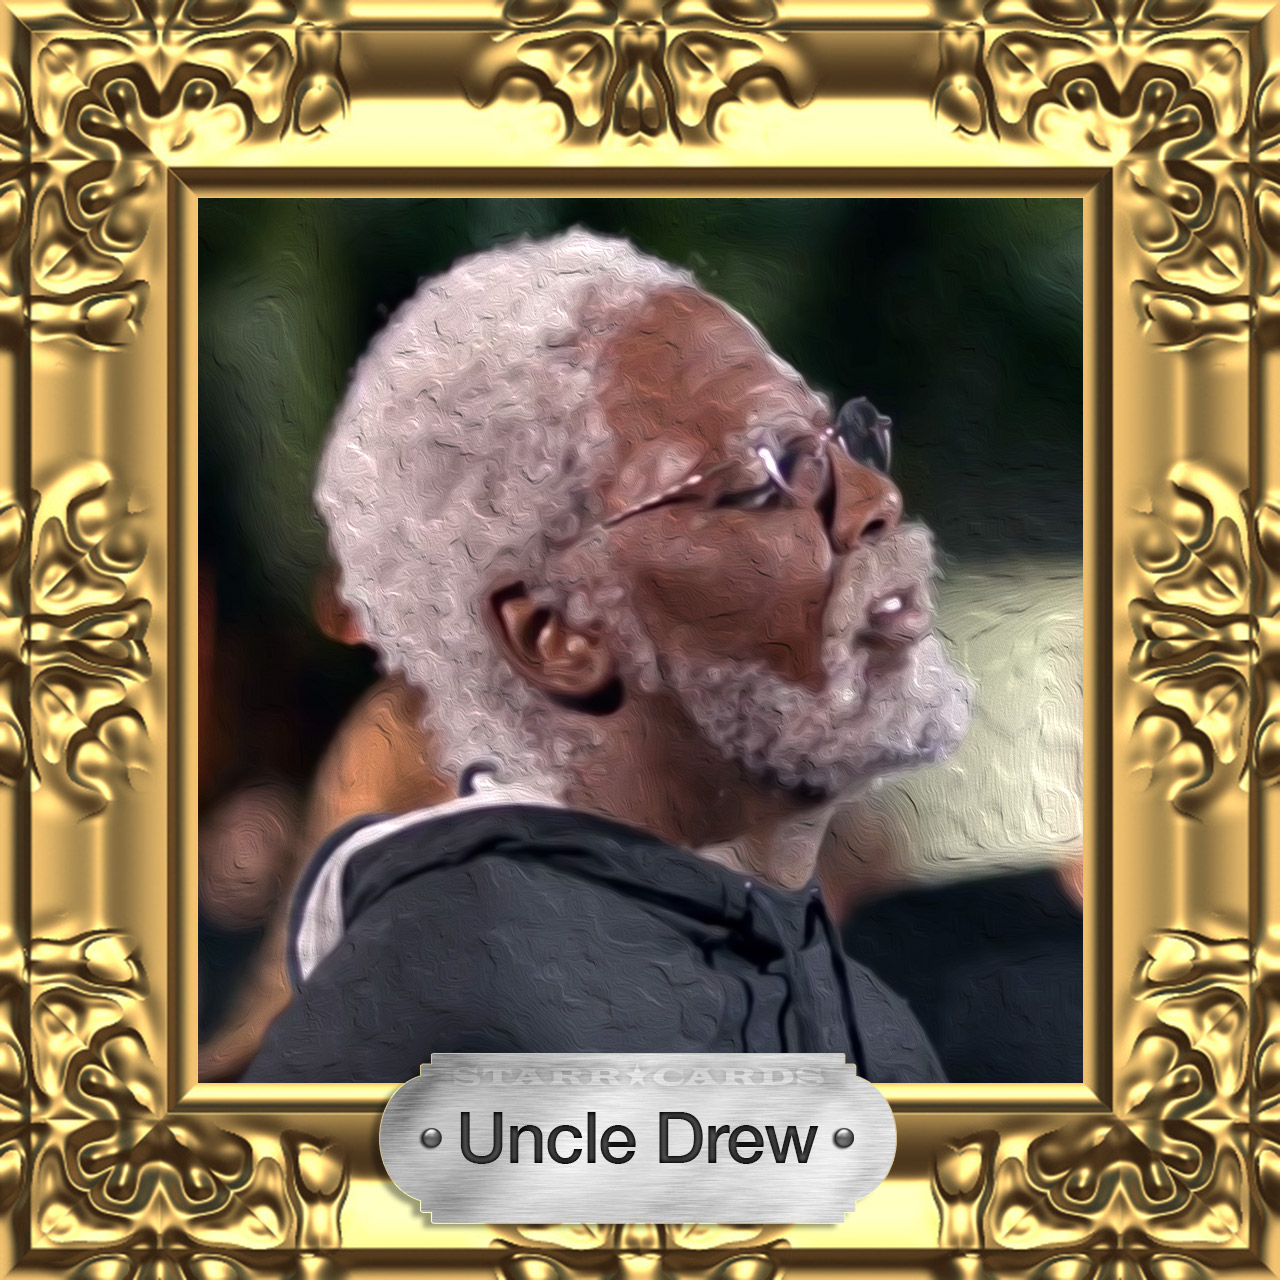 Uncle Drew (Kyrie Irving) is still getting buckets